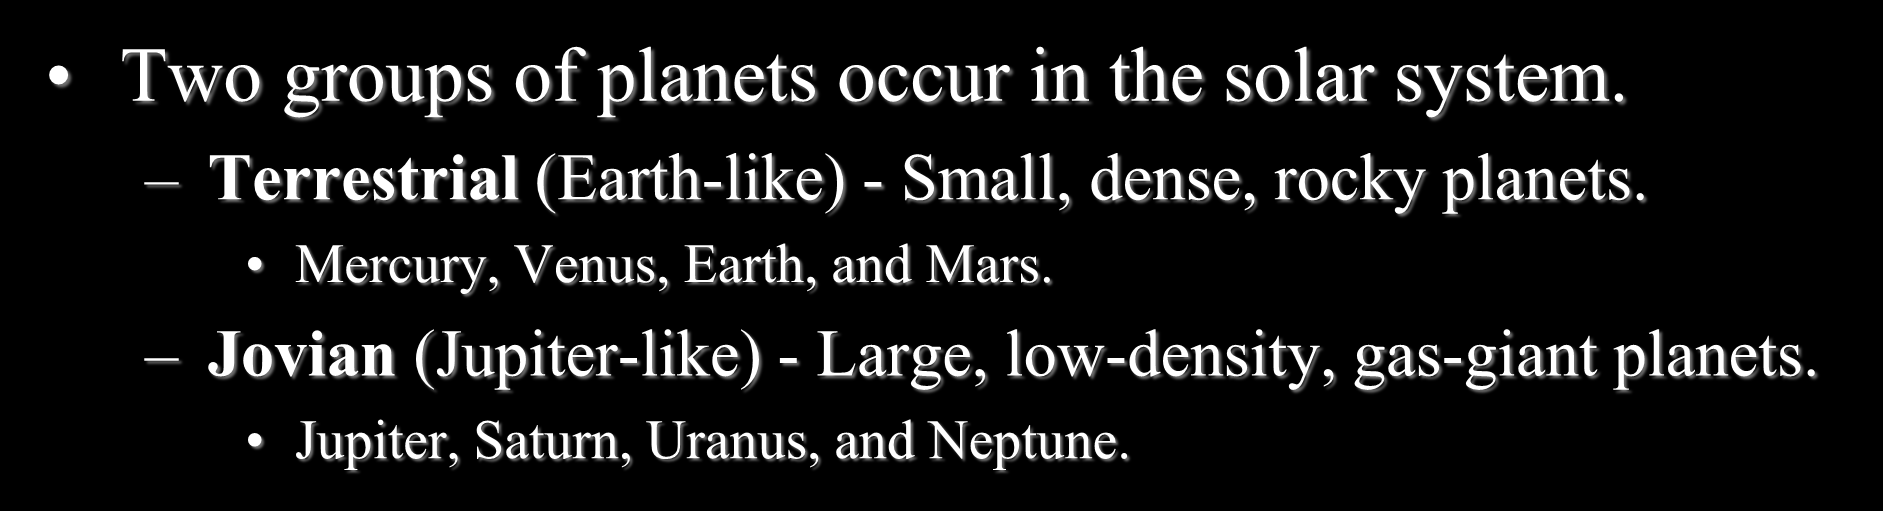 The Planets: An Overview Two groups of planets occur in the solar system. Terrestrial (Earth-like) - Small, dense, rocky planets.